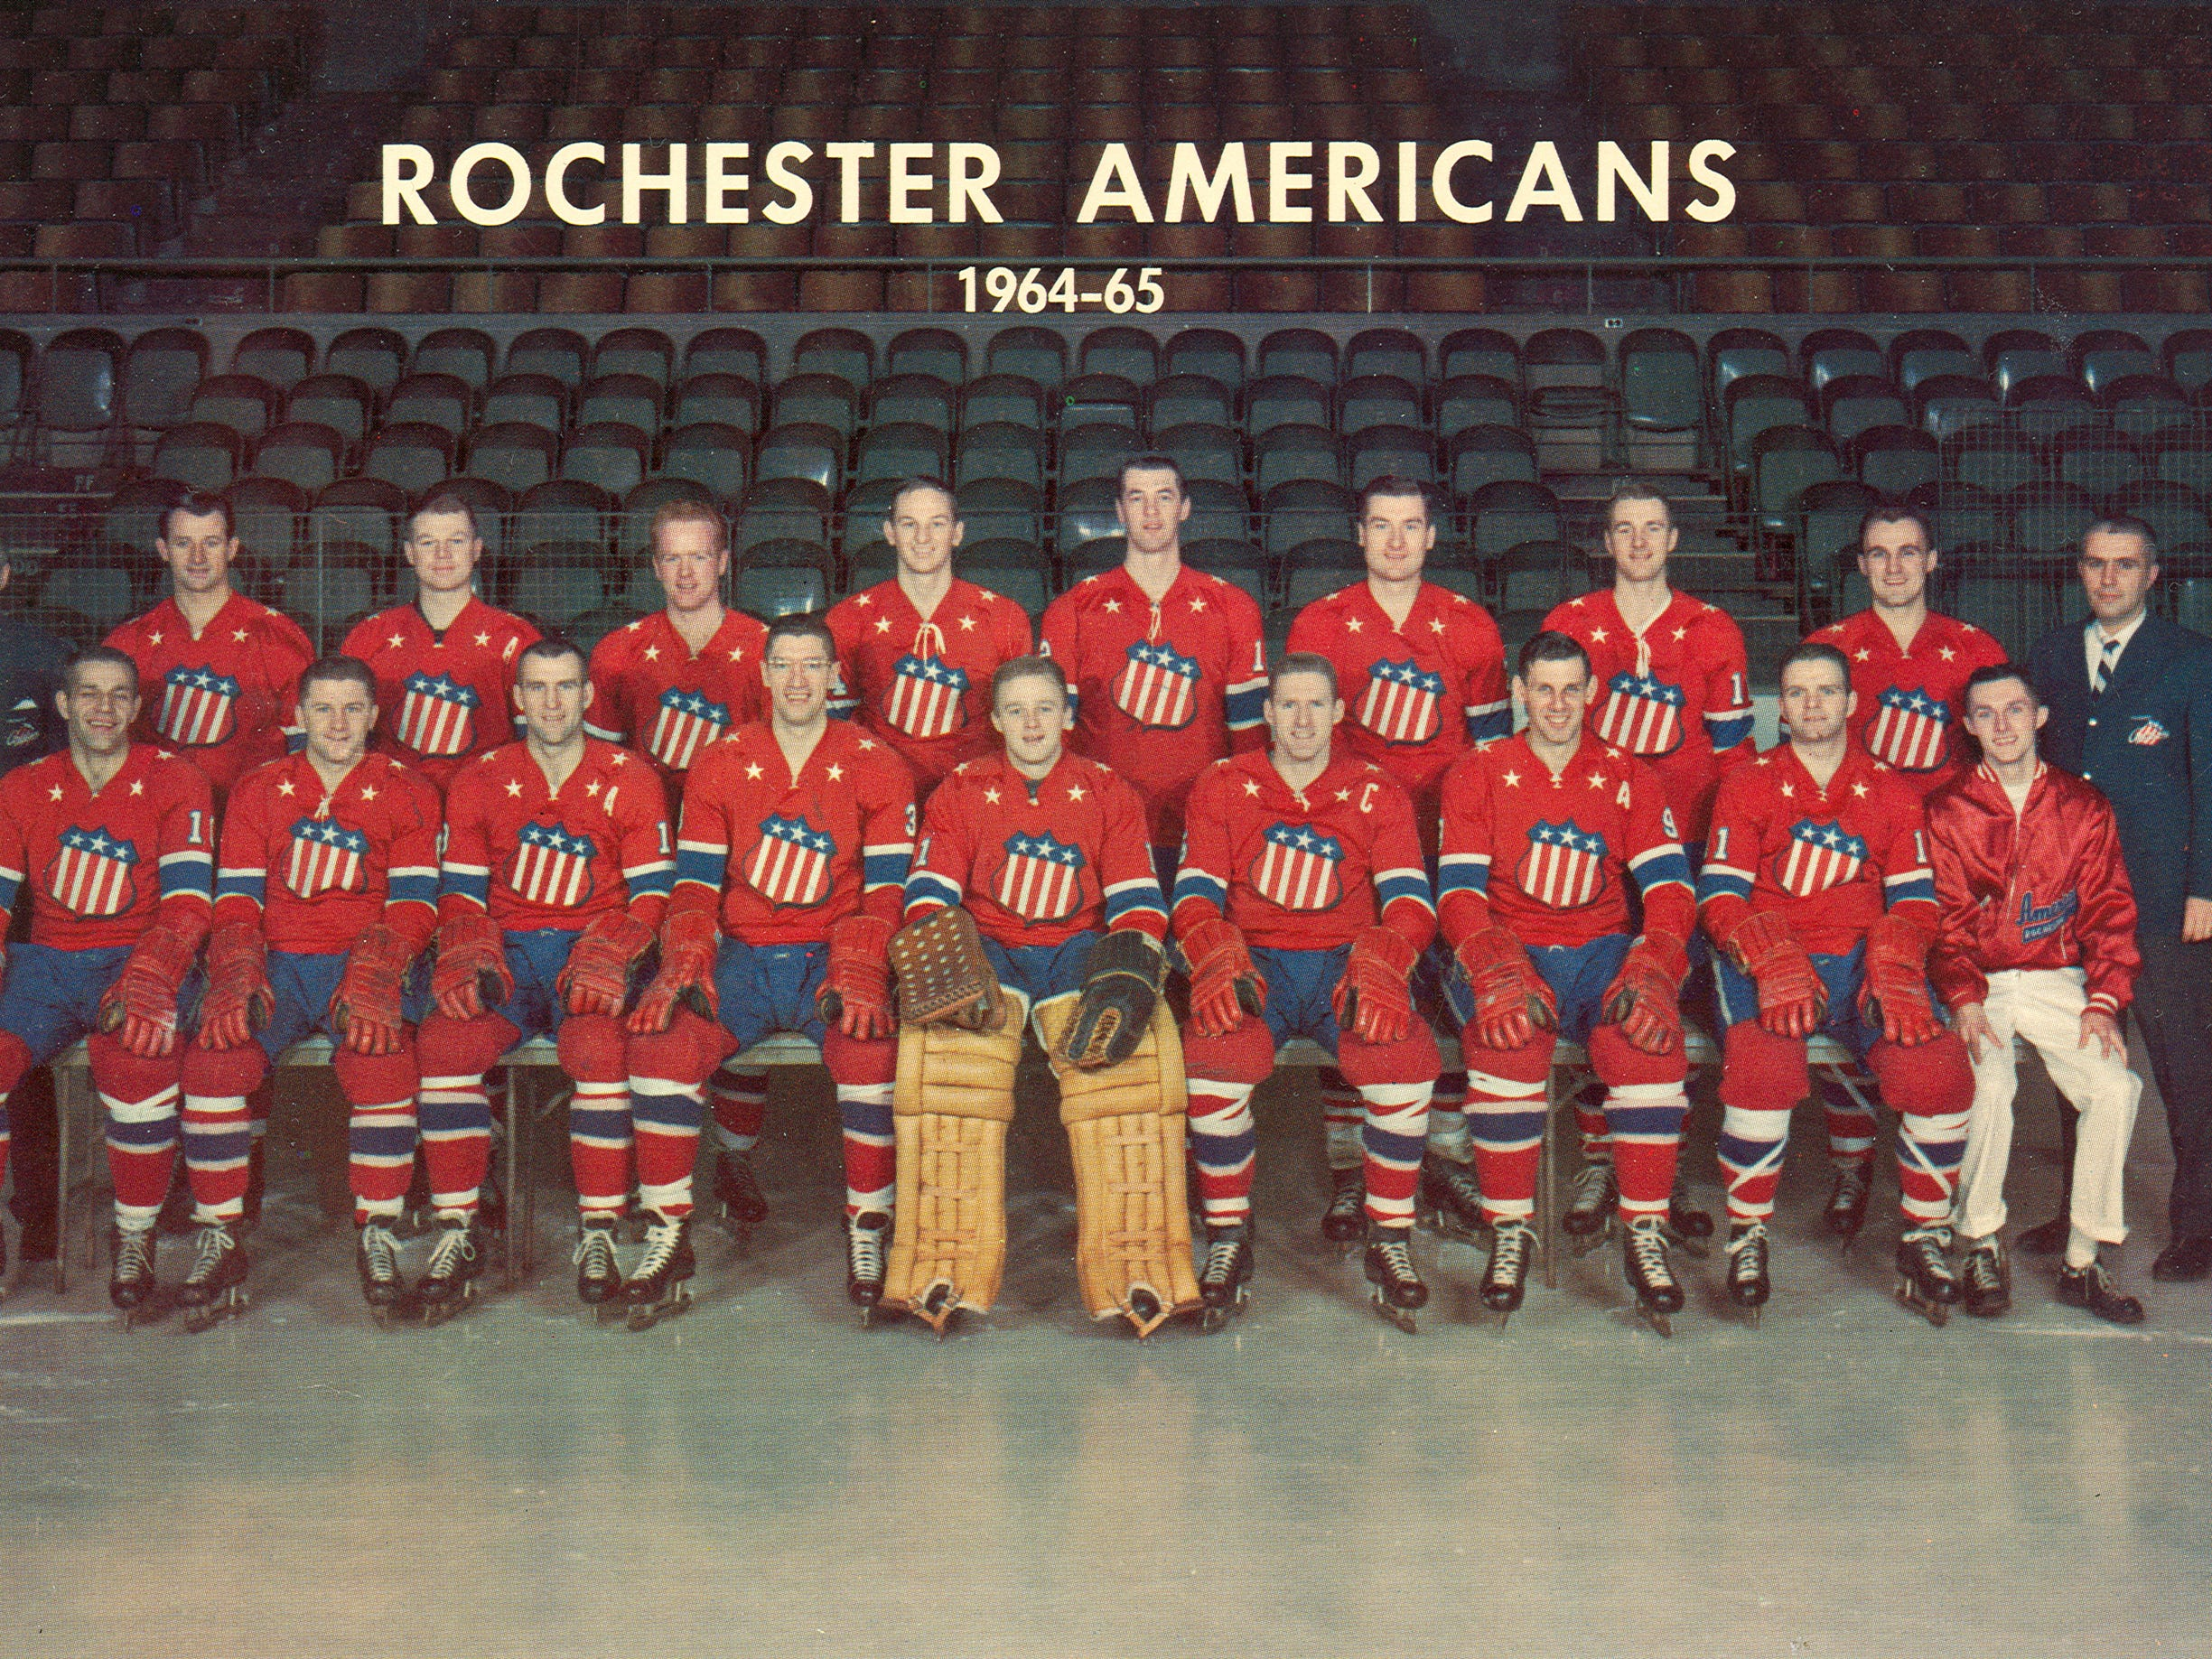 """Joe Crozier, back left, led the Rochester Americans to three Calder Cup championships in his six seasons as coach of the Rochester Americans. The 1964-65 team was the first Calder Cup championship club in team history. Team members included, front row, left to right: Stan Smrke, Wally Boyer, Gerry Ehman, Al Arbour, Gerry Cheevers, Larry Hillman (captain), Dick Gamble (assistant captain) Less Duff, Ken Carson (trainer). Second row: Joe Crozier (coach and GM), Bronco Horvath, Don Cherry (assistant captain), Norm """"Red"""" Armstrong, Jim Pappin, Ed Litzenberger, Duane Rupp, Don McKenney, Darryl Sly, Dave Faunce (publicity director)."""